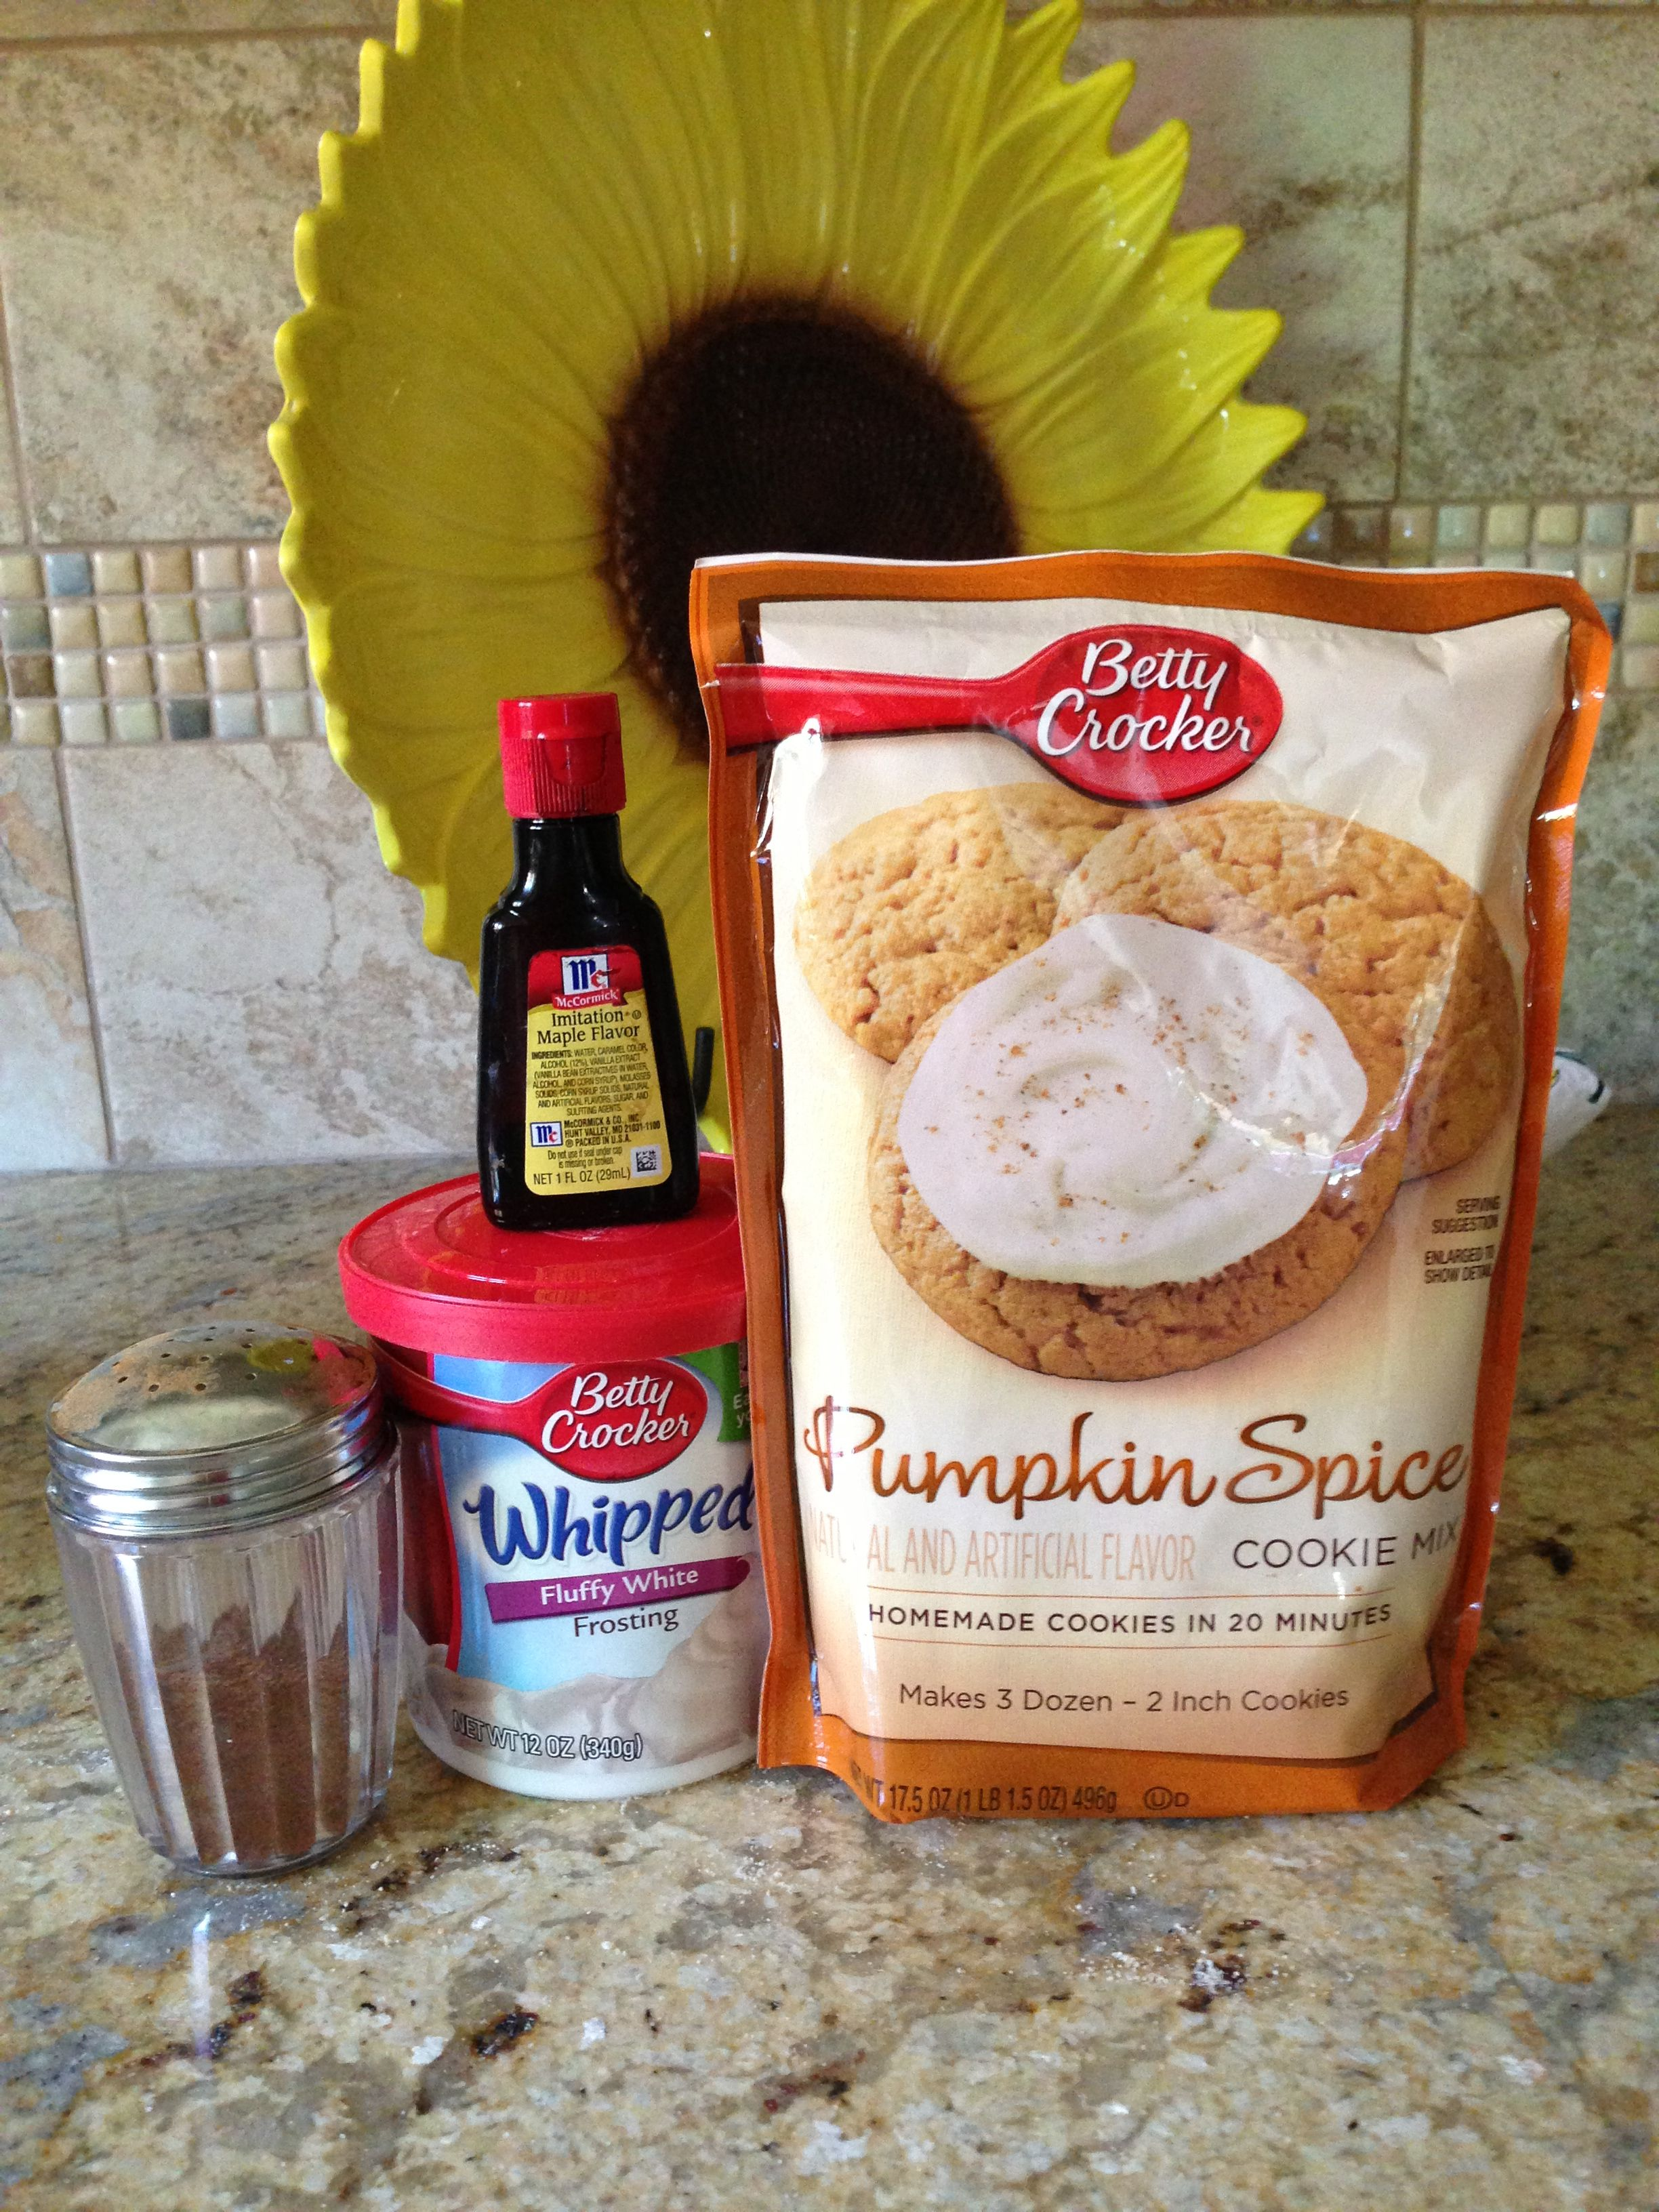 Pumpkin spice cookies Make cookies as directions suggest For frosting: Betty Crocker cream cheese frosting (1can) Maple flavoring Sprinkle with 50/50 mixture of sugar/pumpkin pie spice